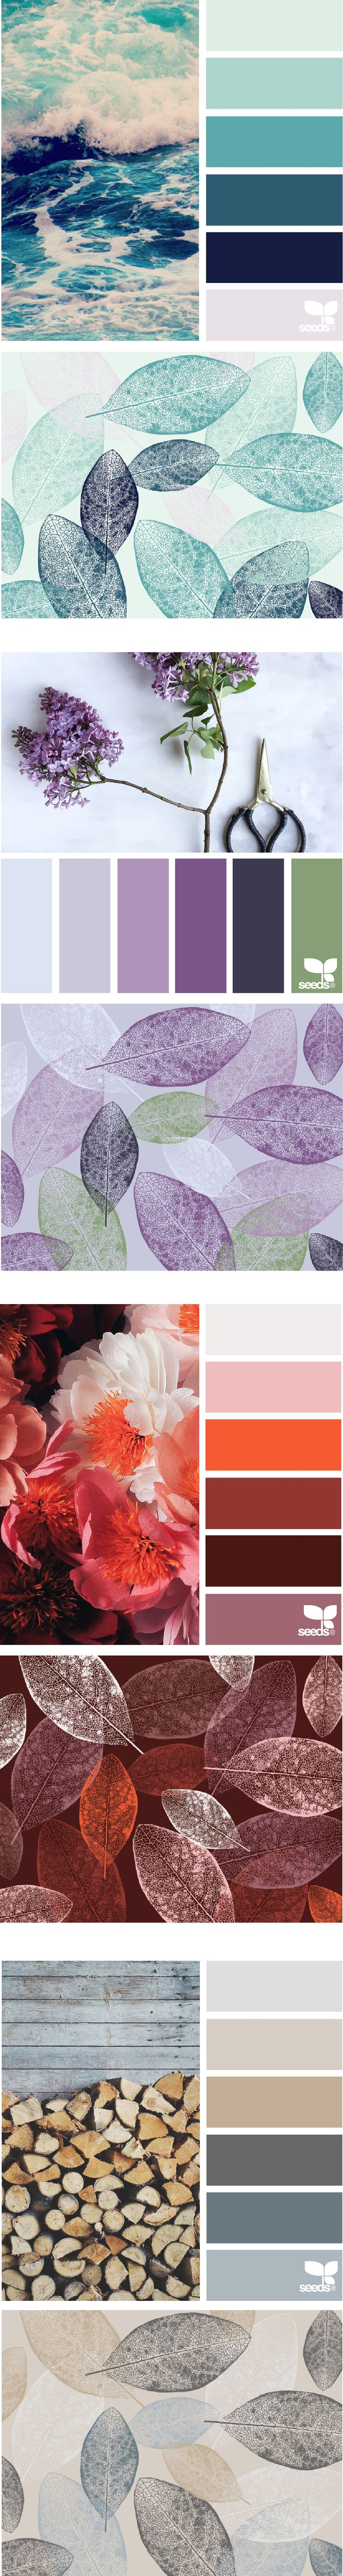 Announcing my new color class! Enter the colorful world of Design Seeds, and learn my process for using color inspired by the seasons in Inspired Color: Using Color Successfully in your Work!  >>>>>>>>>> Join here: http://skl.sh/designseeds   >>>>>>>>>> photo credits : via #SeedsColor on Instagram ... with special thanks to the following talented folks who generously share their inspiration images @thebungalow22 @c_colli @apetalunfolds @julie_audet